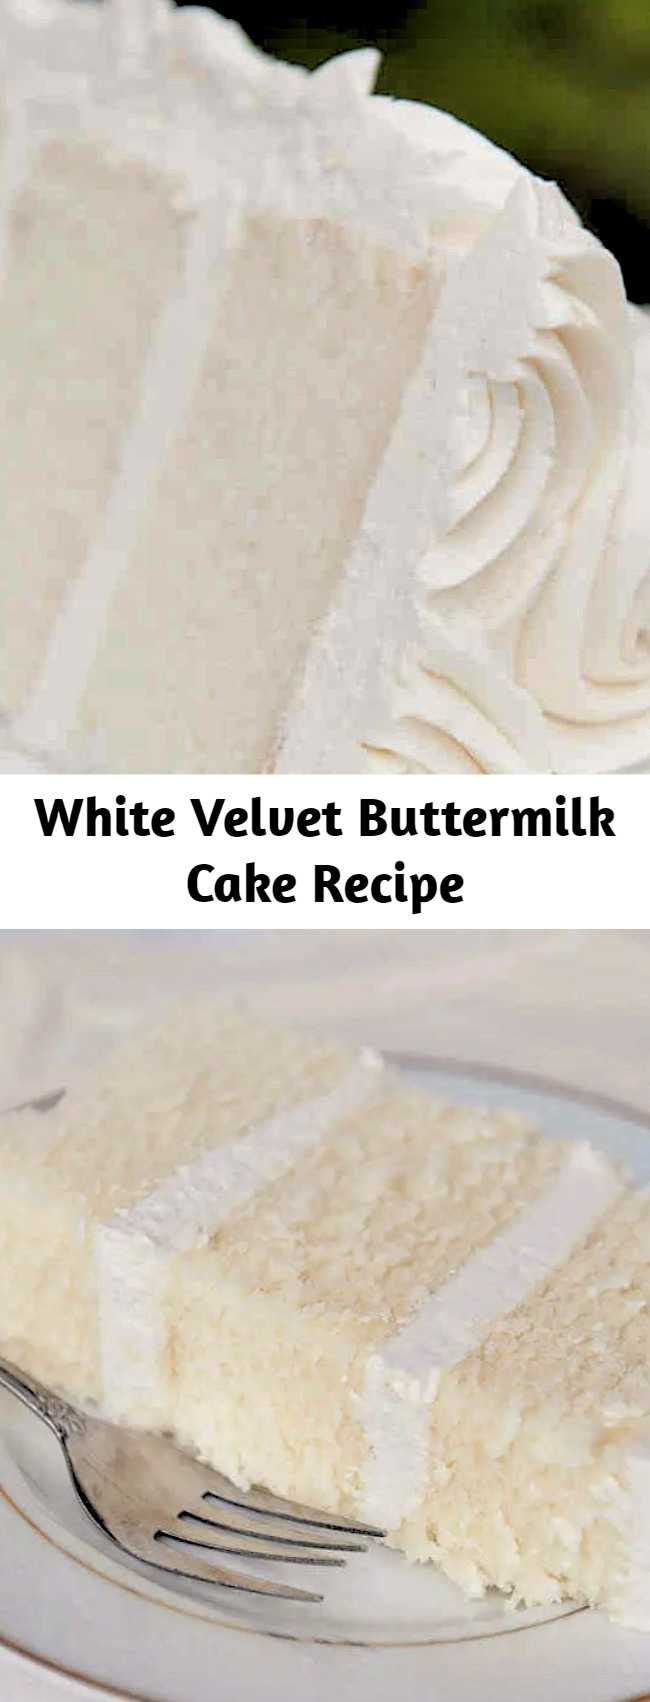 "White velvet cake gets it's flavor and velvety texture from buttermilk. A moist, tender cake that is great for any special occasion. This recipe makes two 8"" round cakes about 2"" tall. Bake at 335F for 30-35 minutes until a toothpick comes out cleanly."